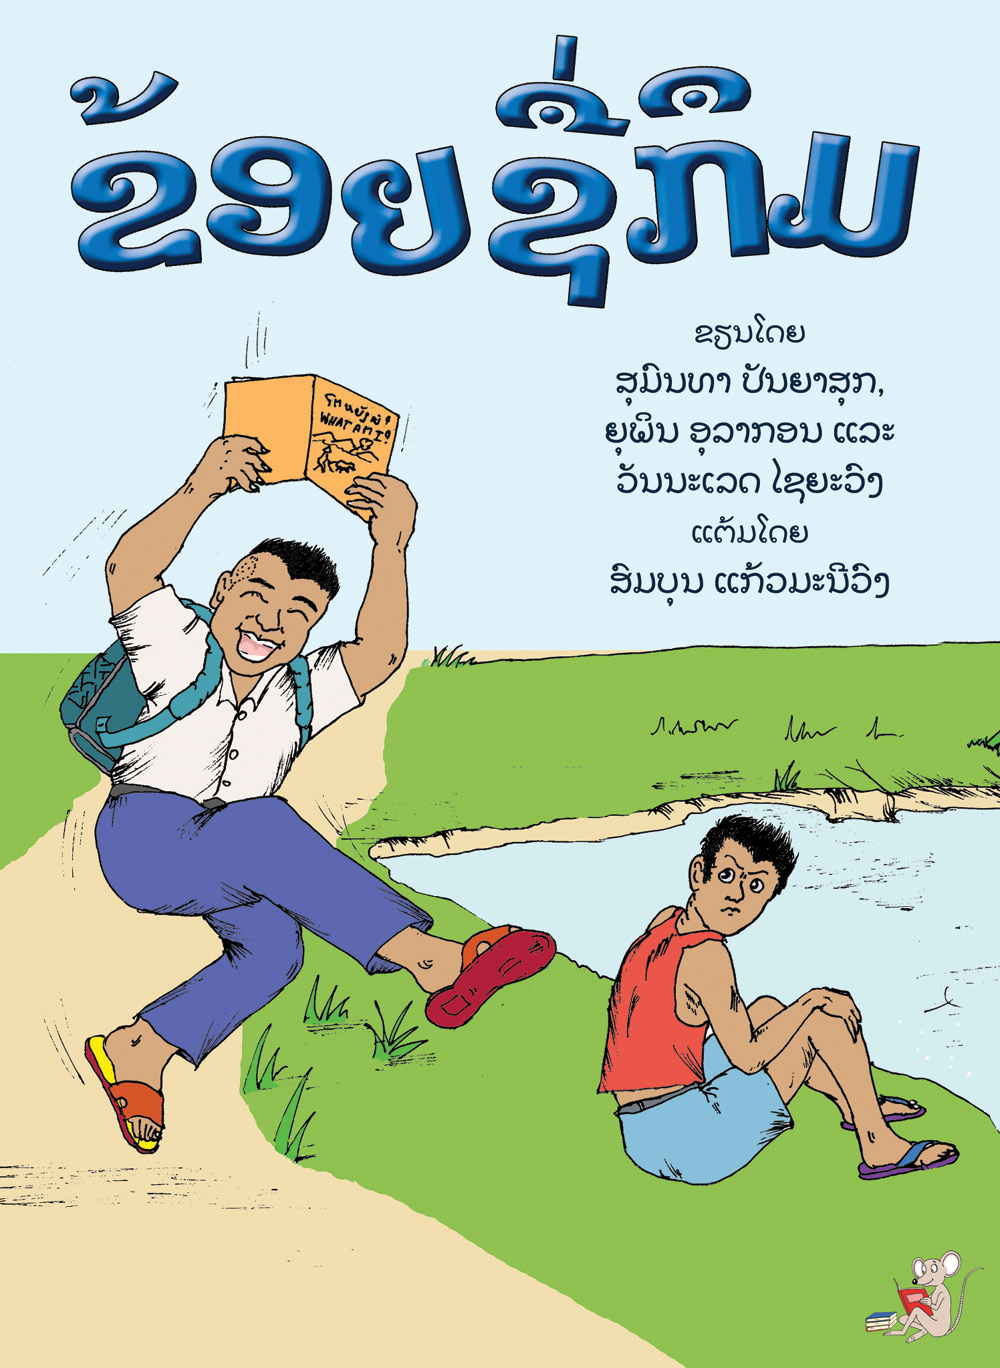 I Am Geum large book cover, published in Lao language